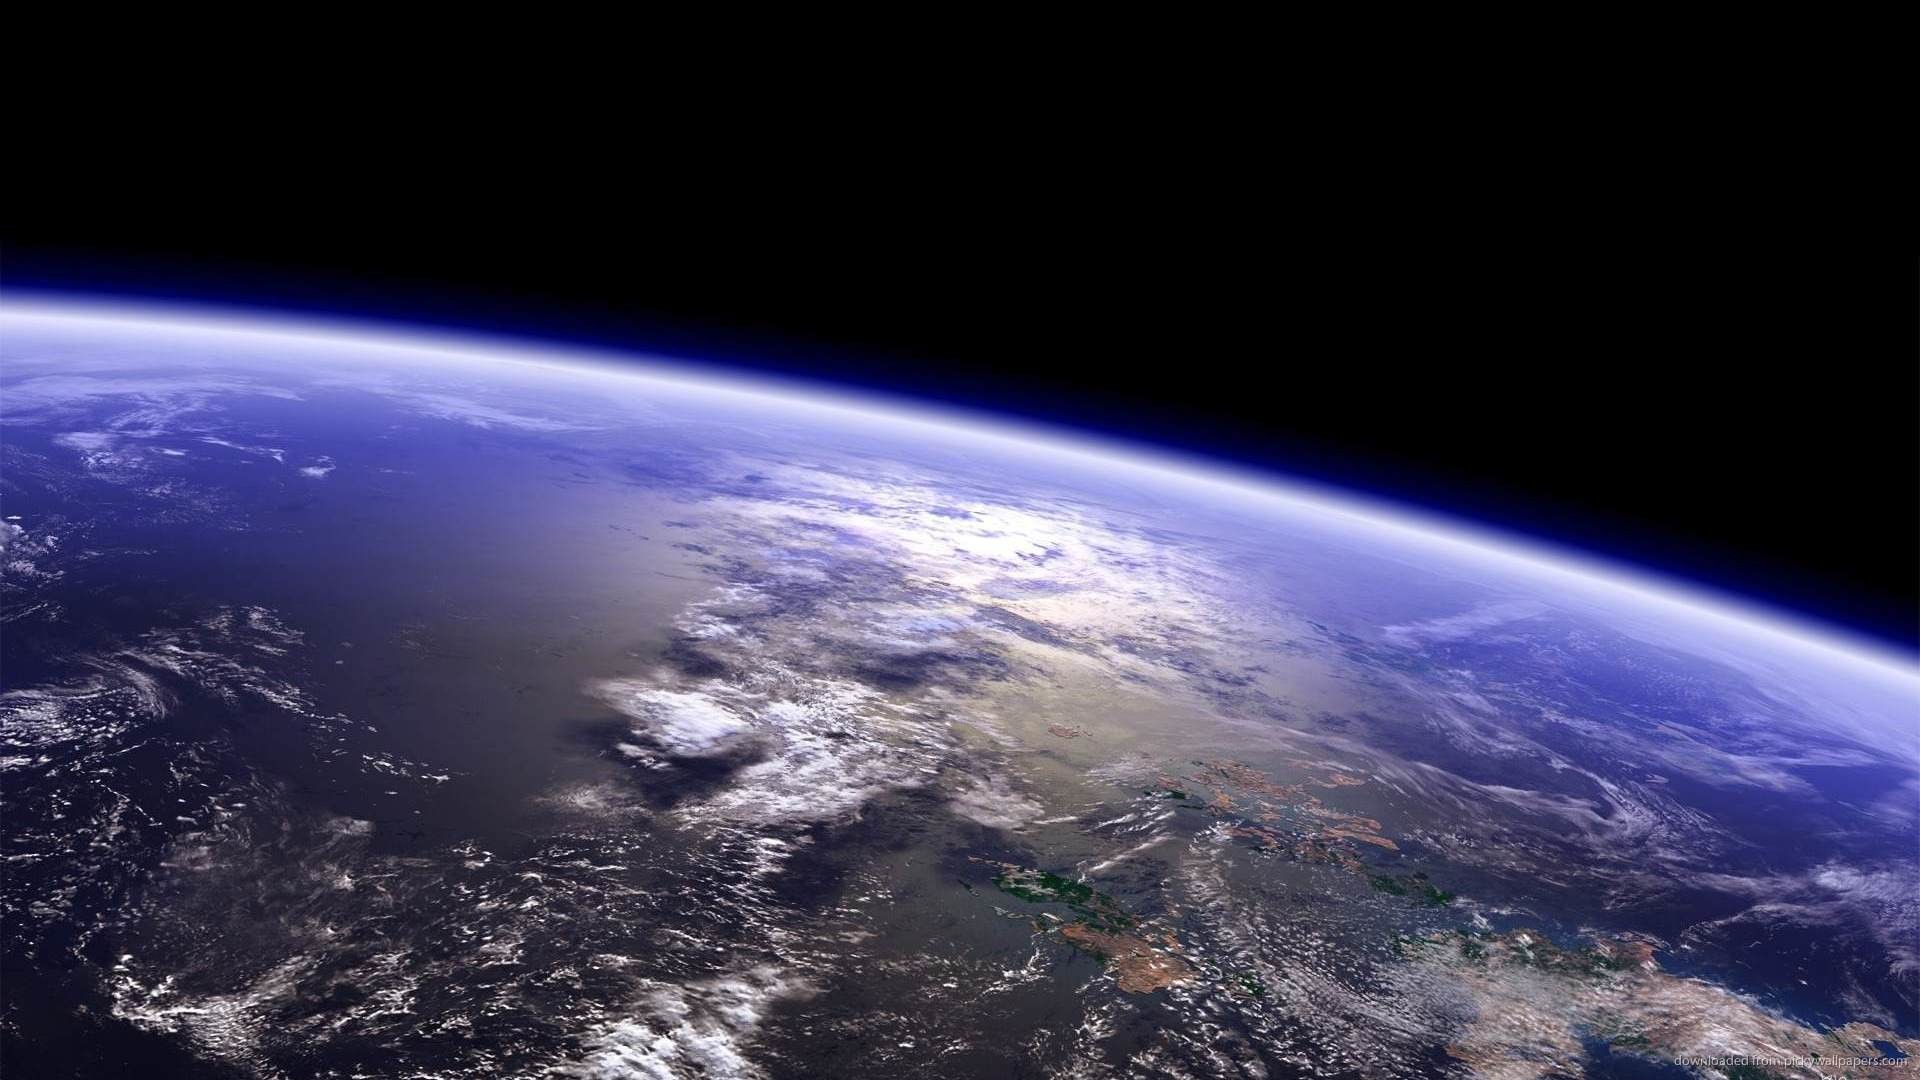 Earth From Space Wallpaper 1920x1080 74 Images